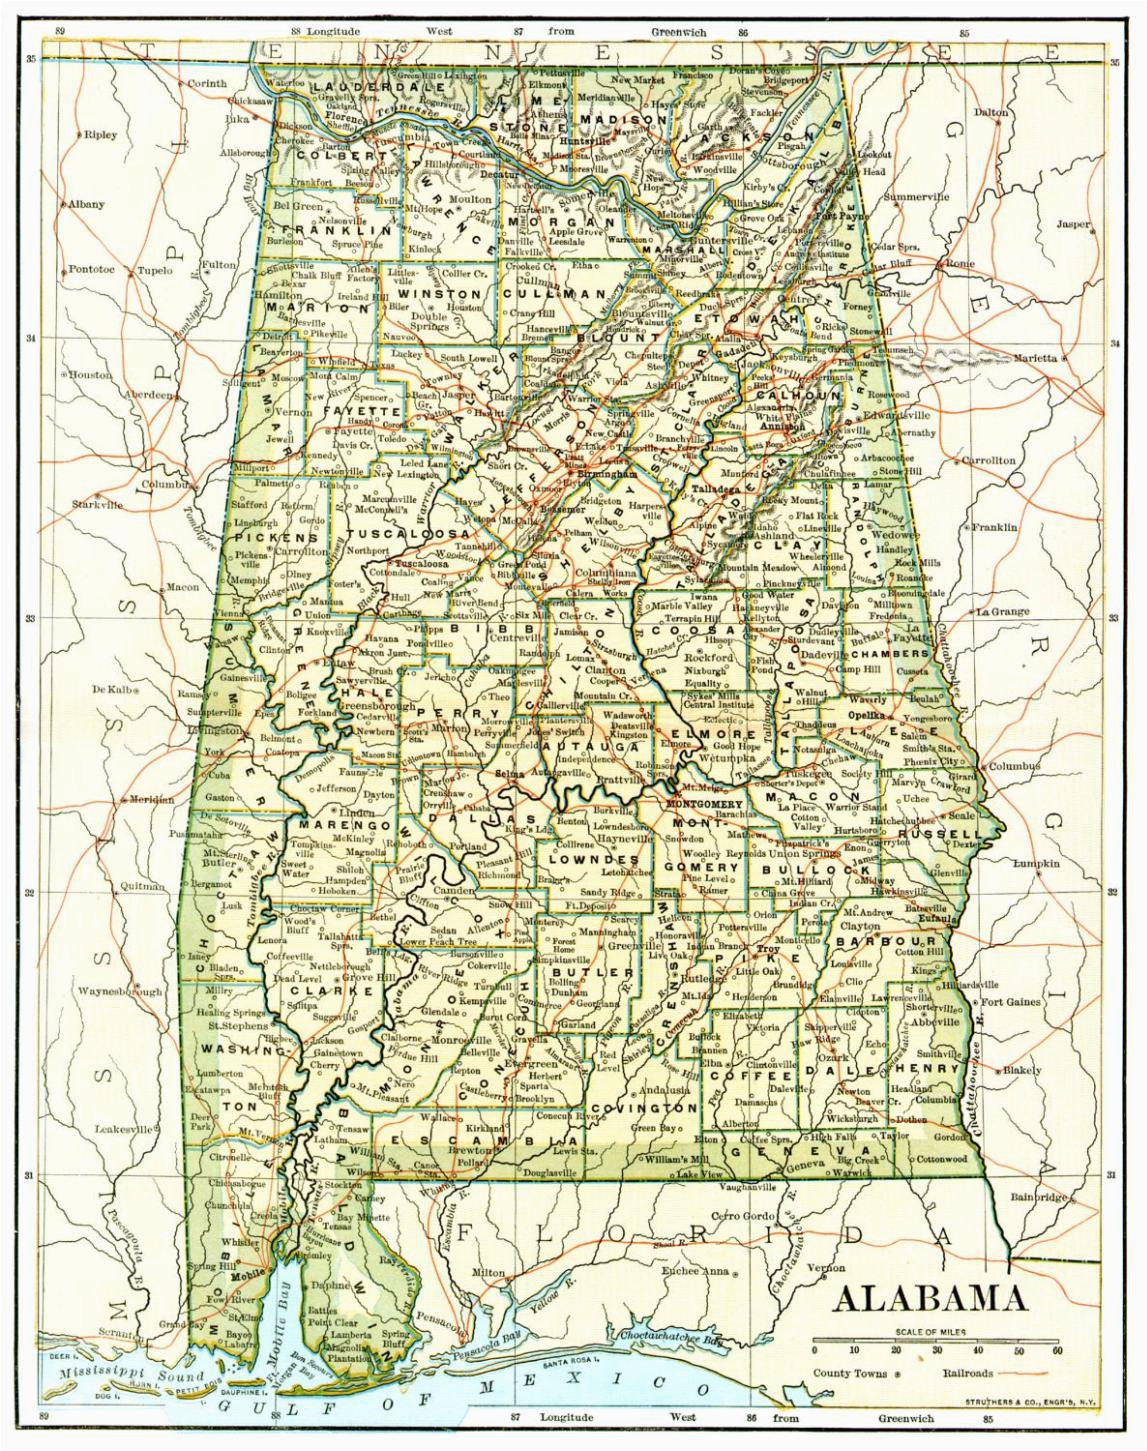 alabama highway map luxury united states map with alabama identified